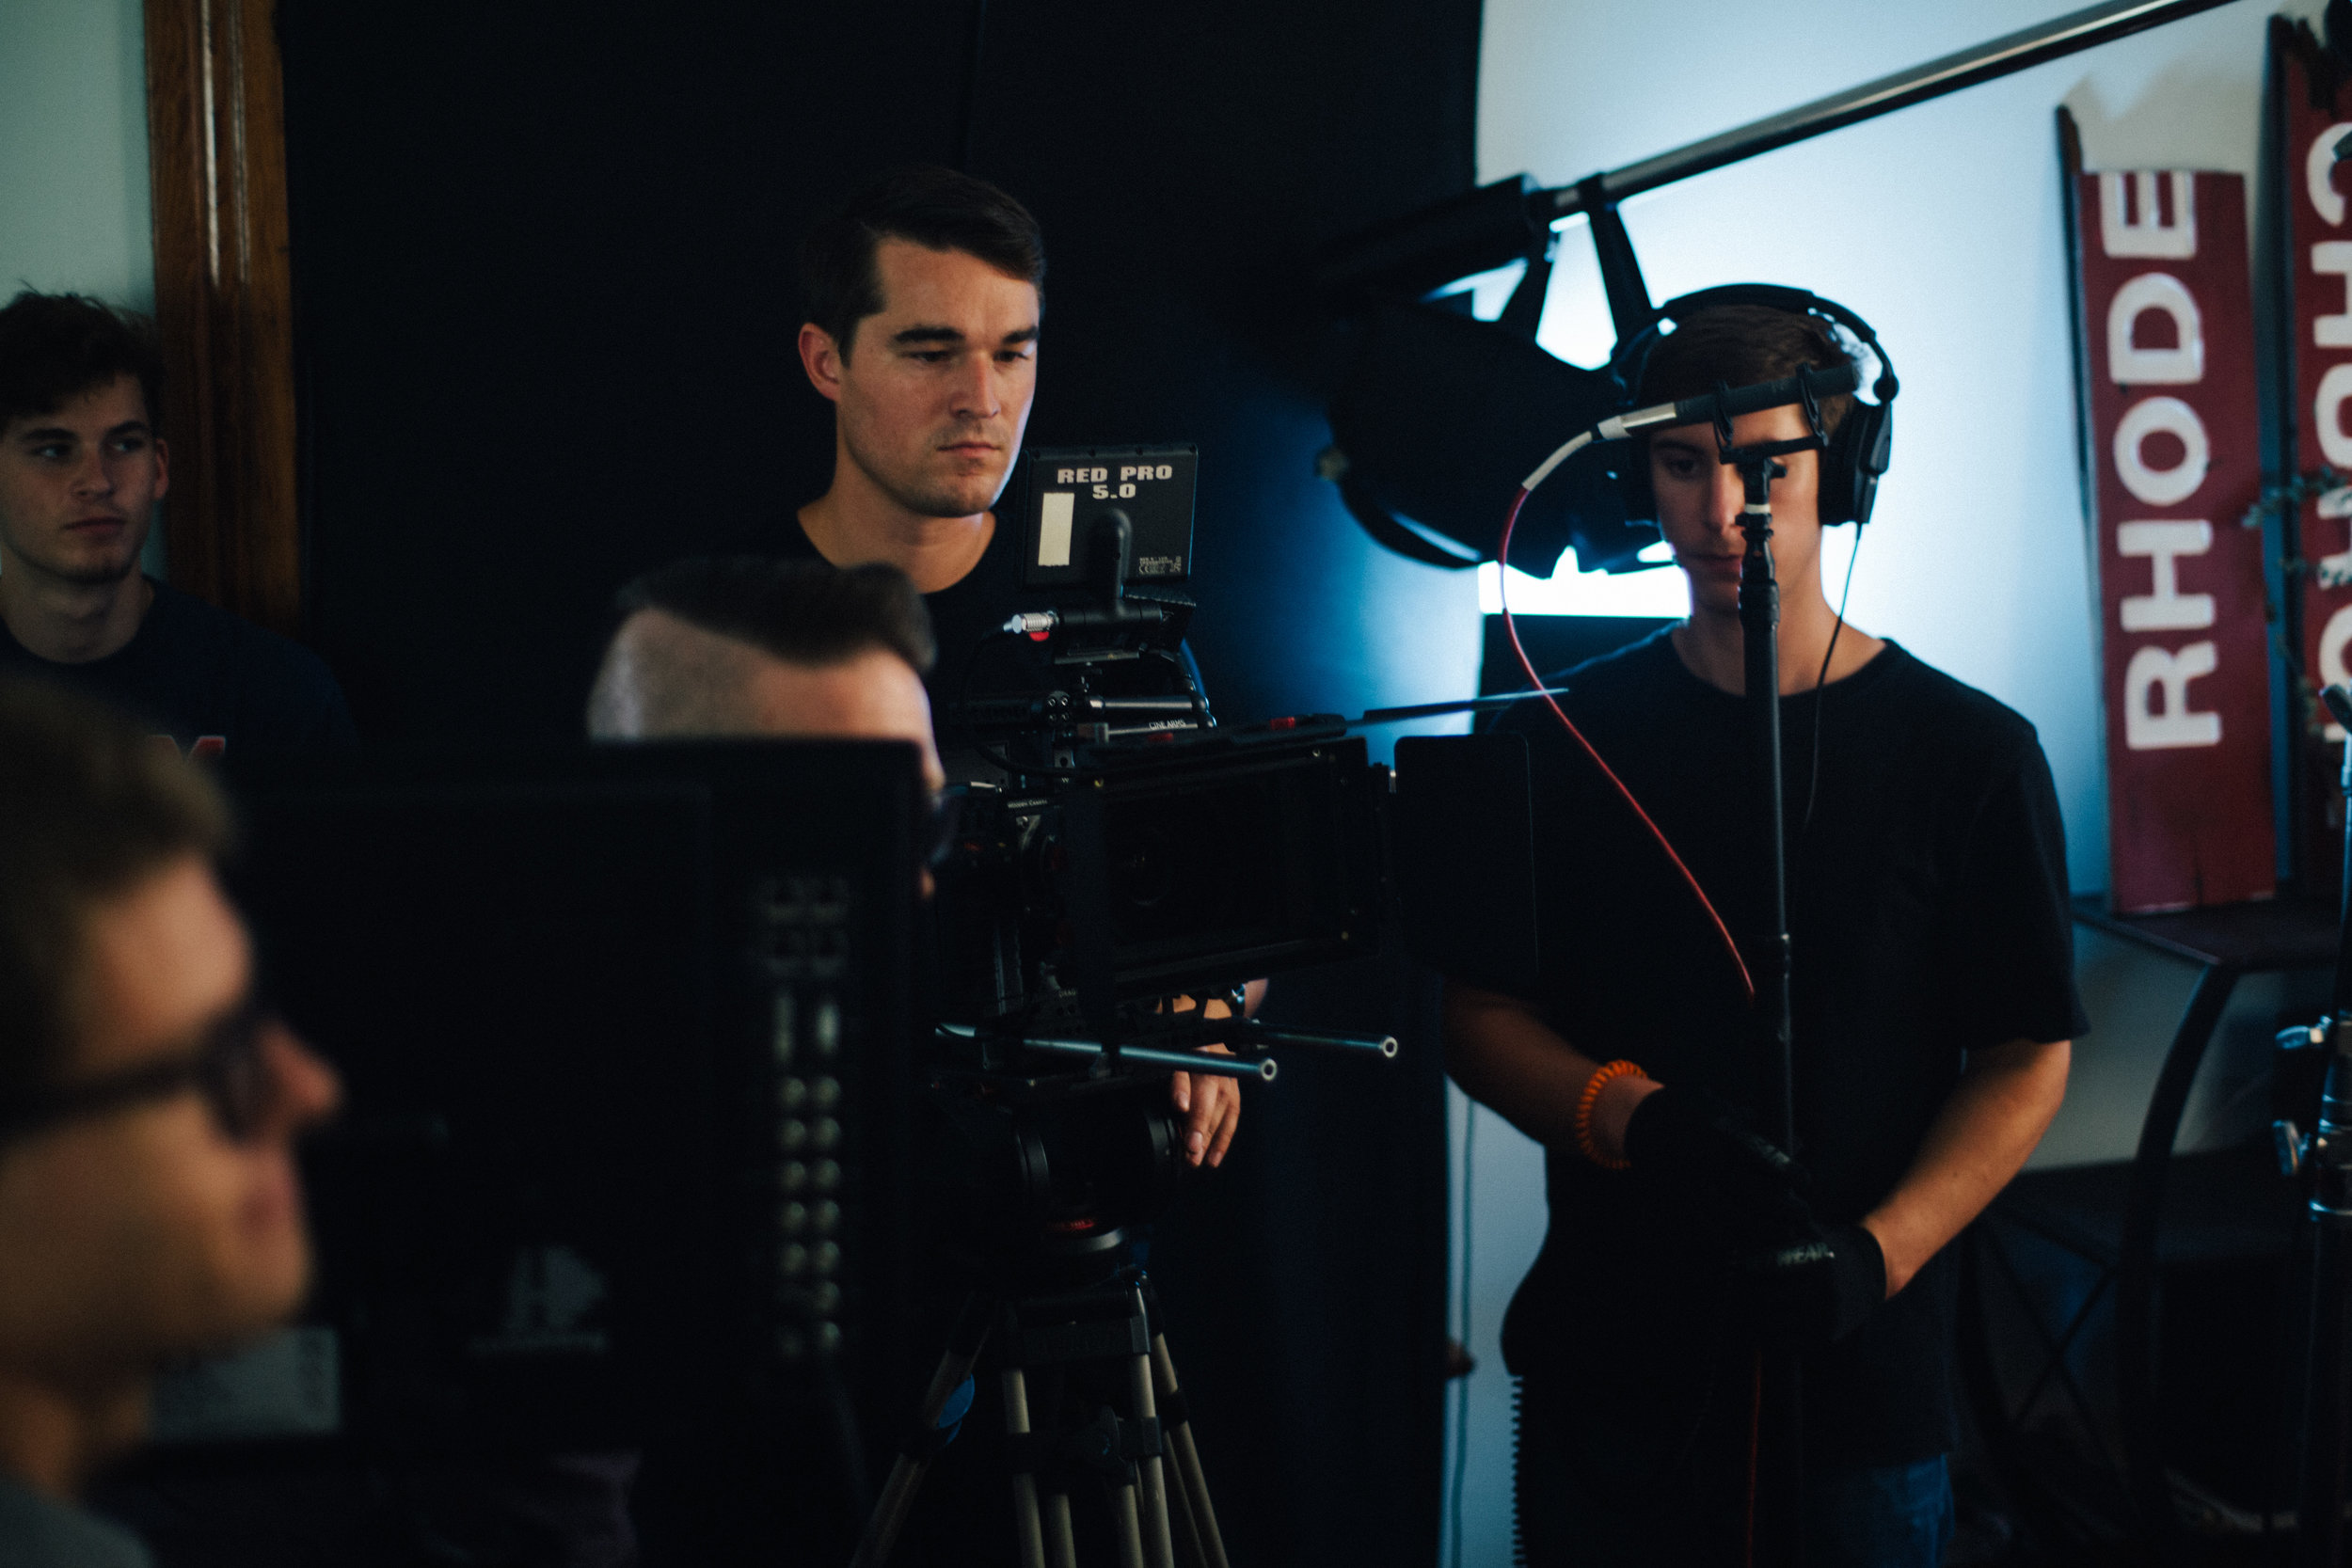 Promotional Video Production - On Set with HD Cameras for Promotional Marketing